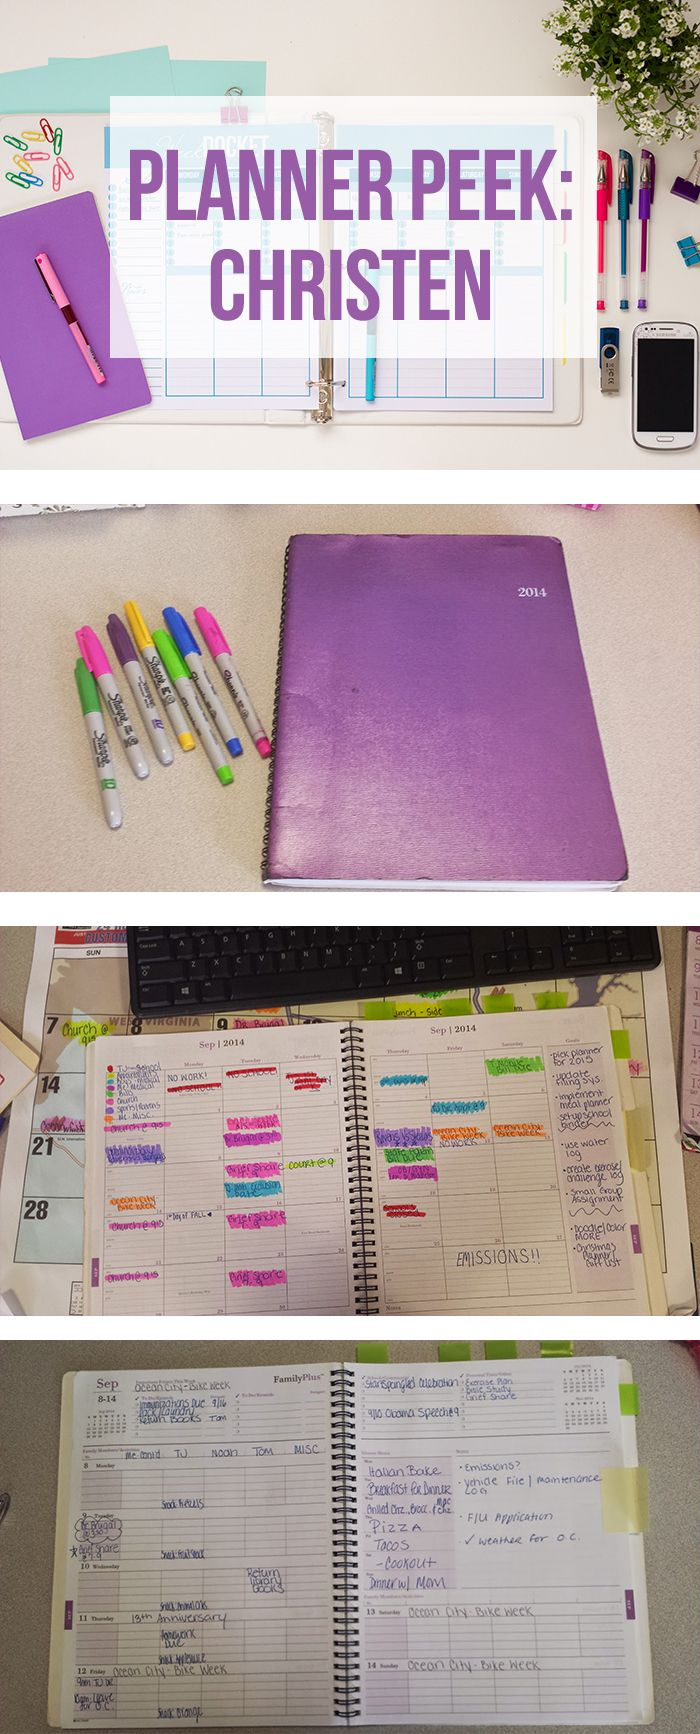 A Tour of Christen's Daytimer Family Plus Weekly Monthly Planner